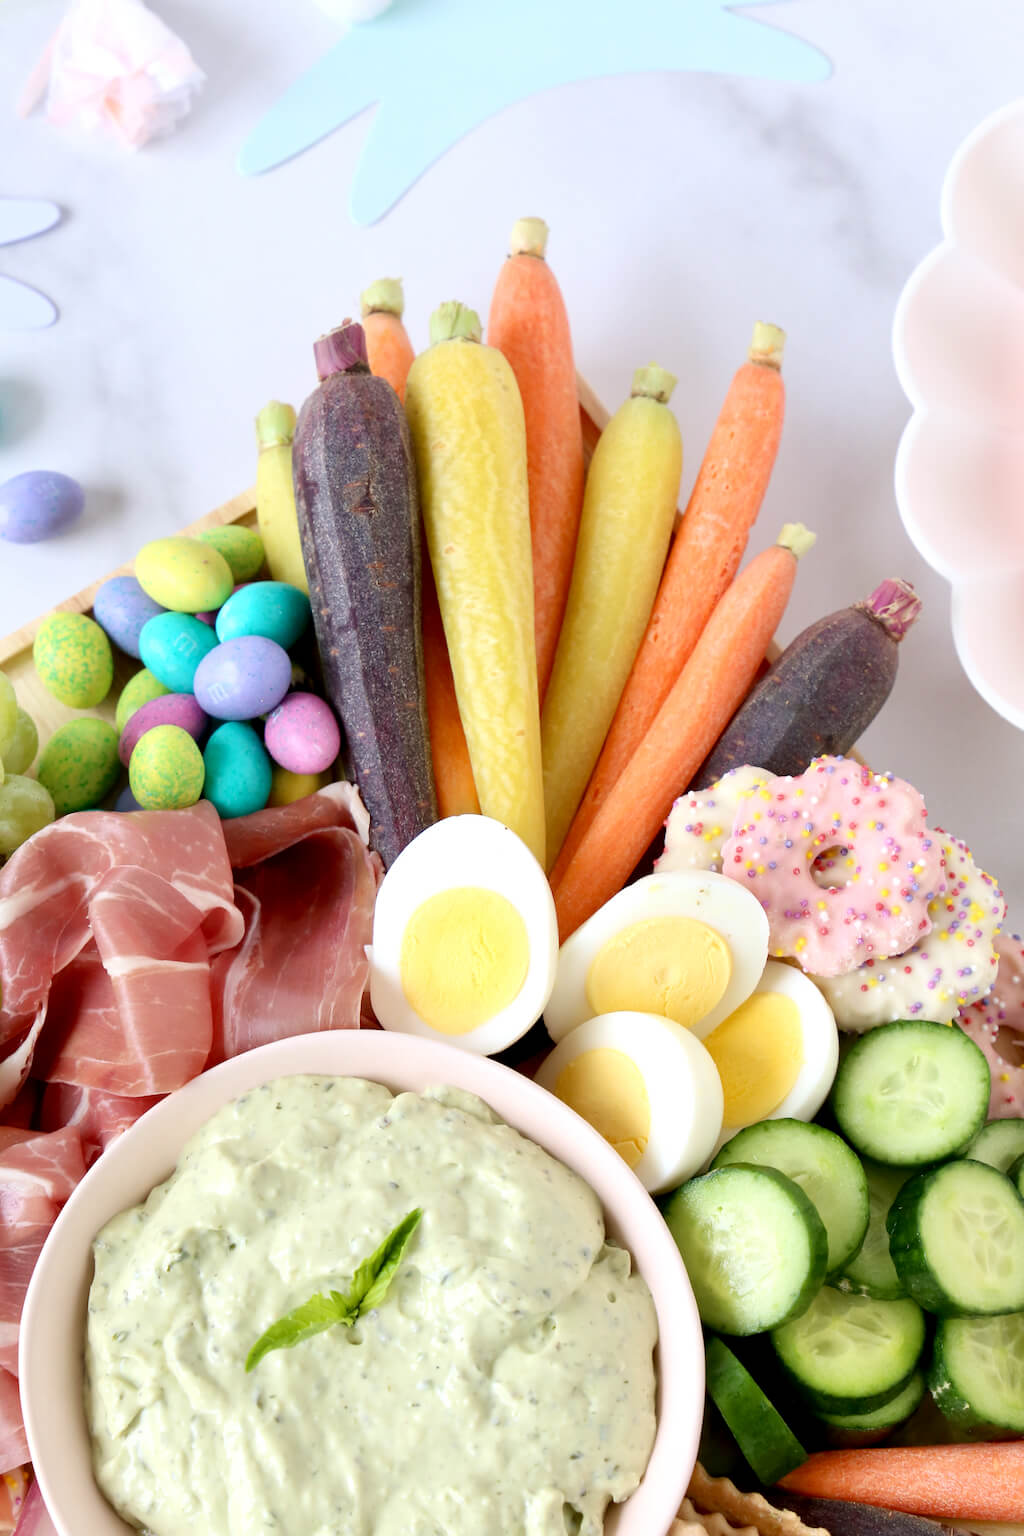 green dip, carrots, boiled eggs, cucumbers and prosciutto on a board